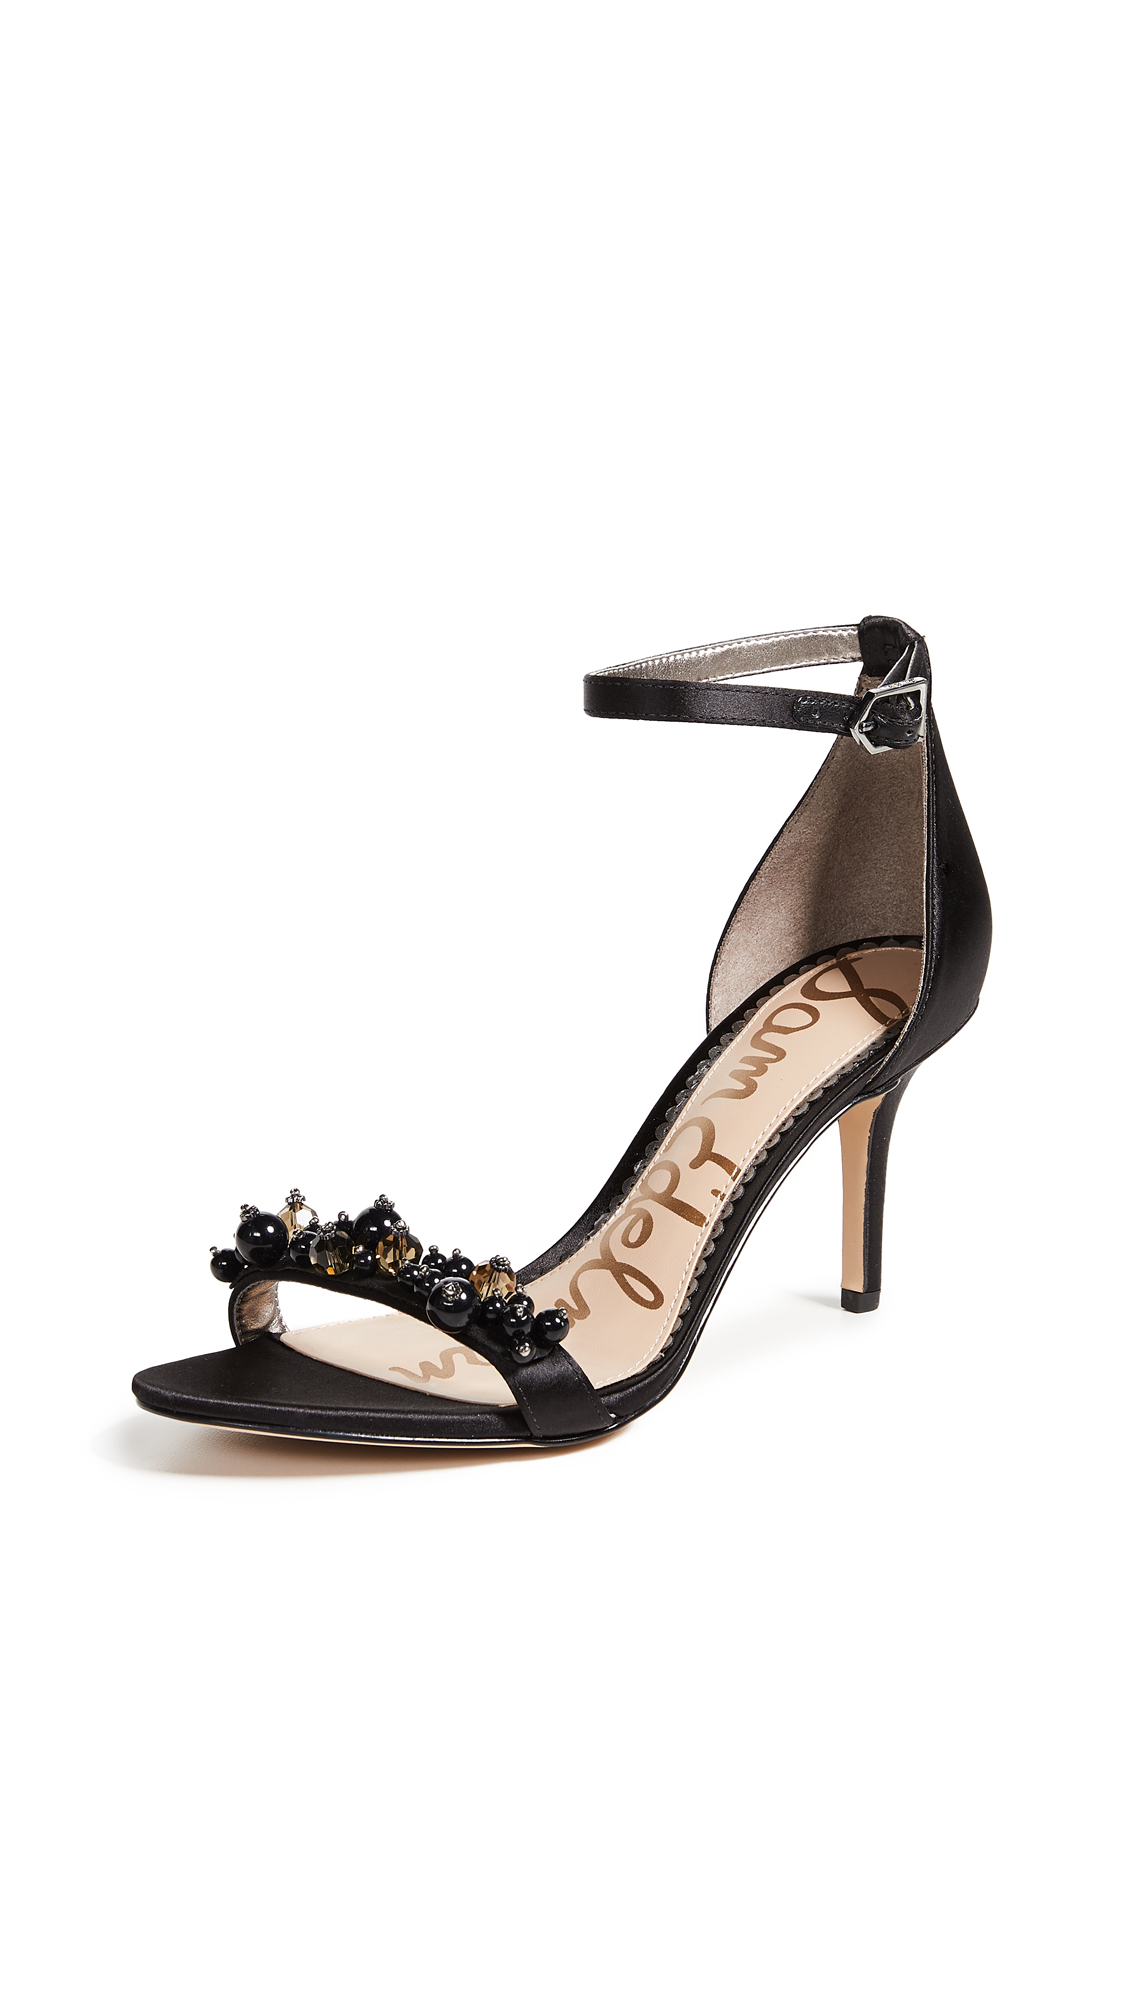 Sam Edelman Platt Sandals - Black